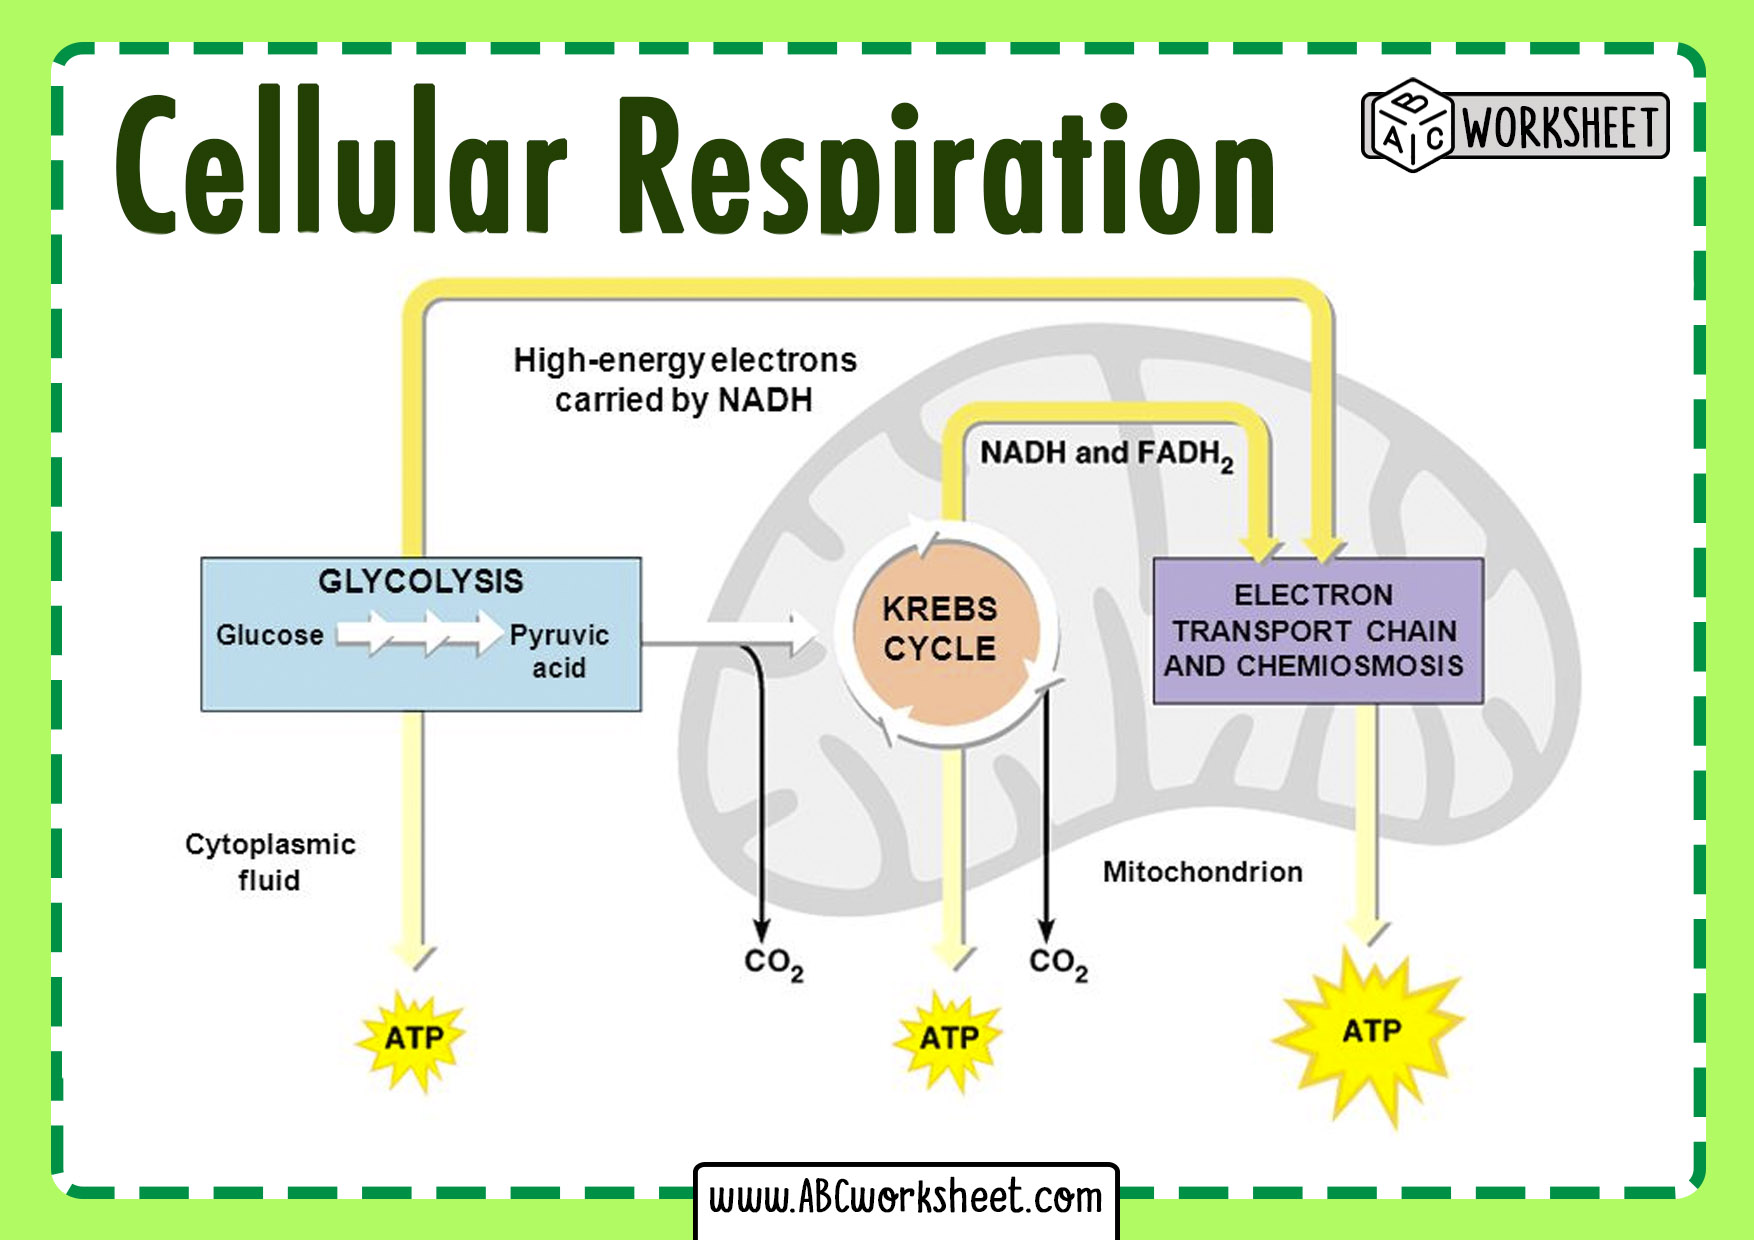 Cellular Respiration Cycle